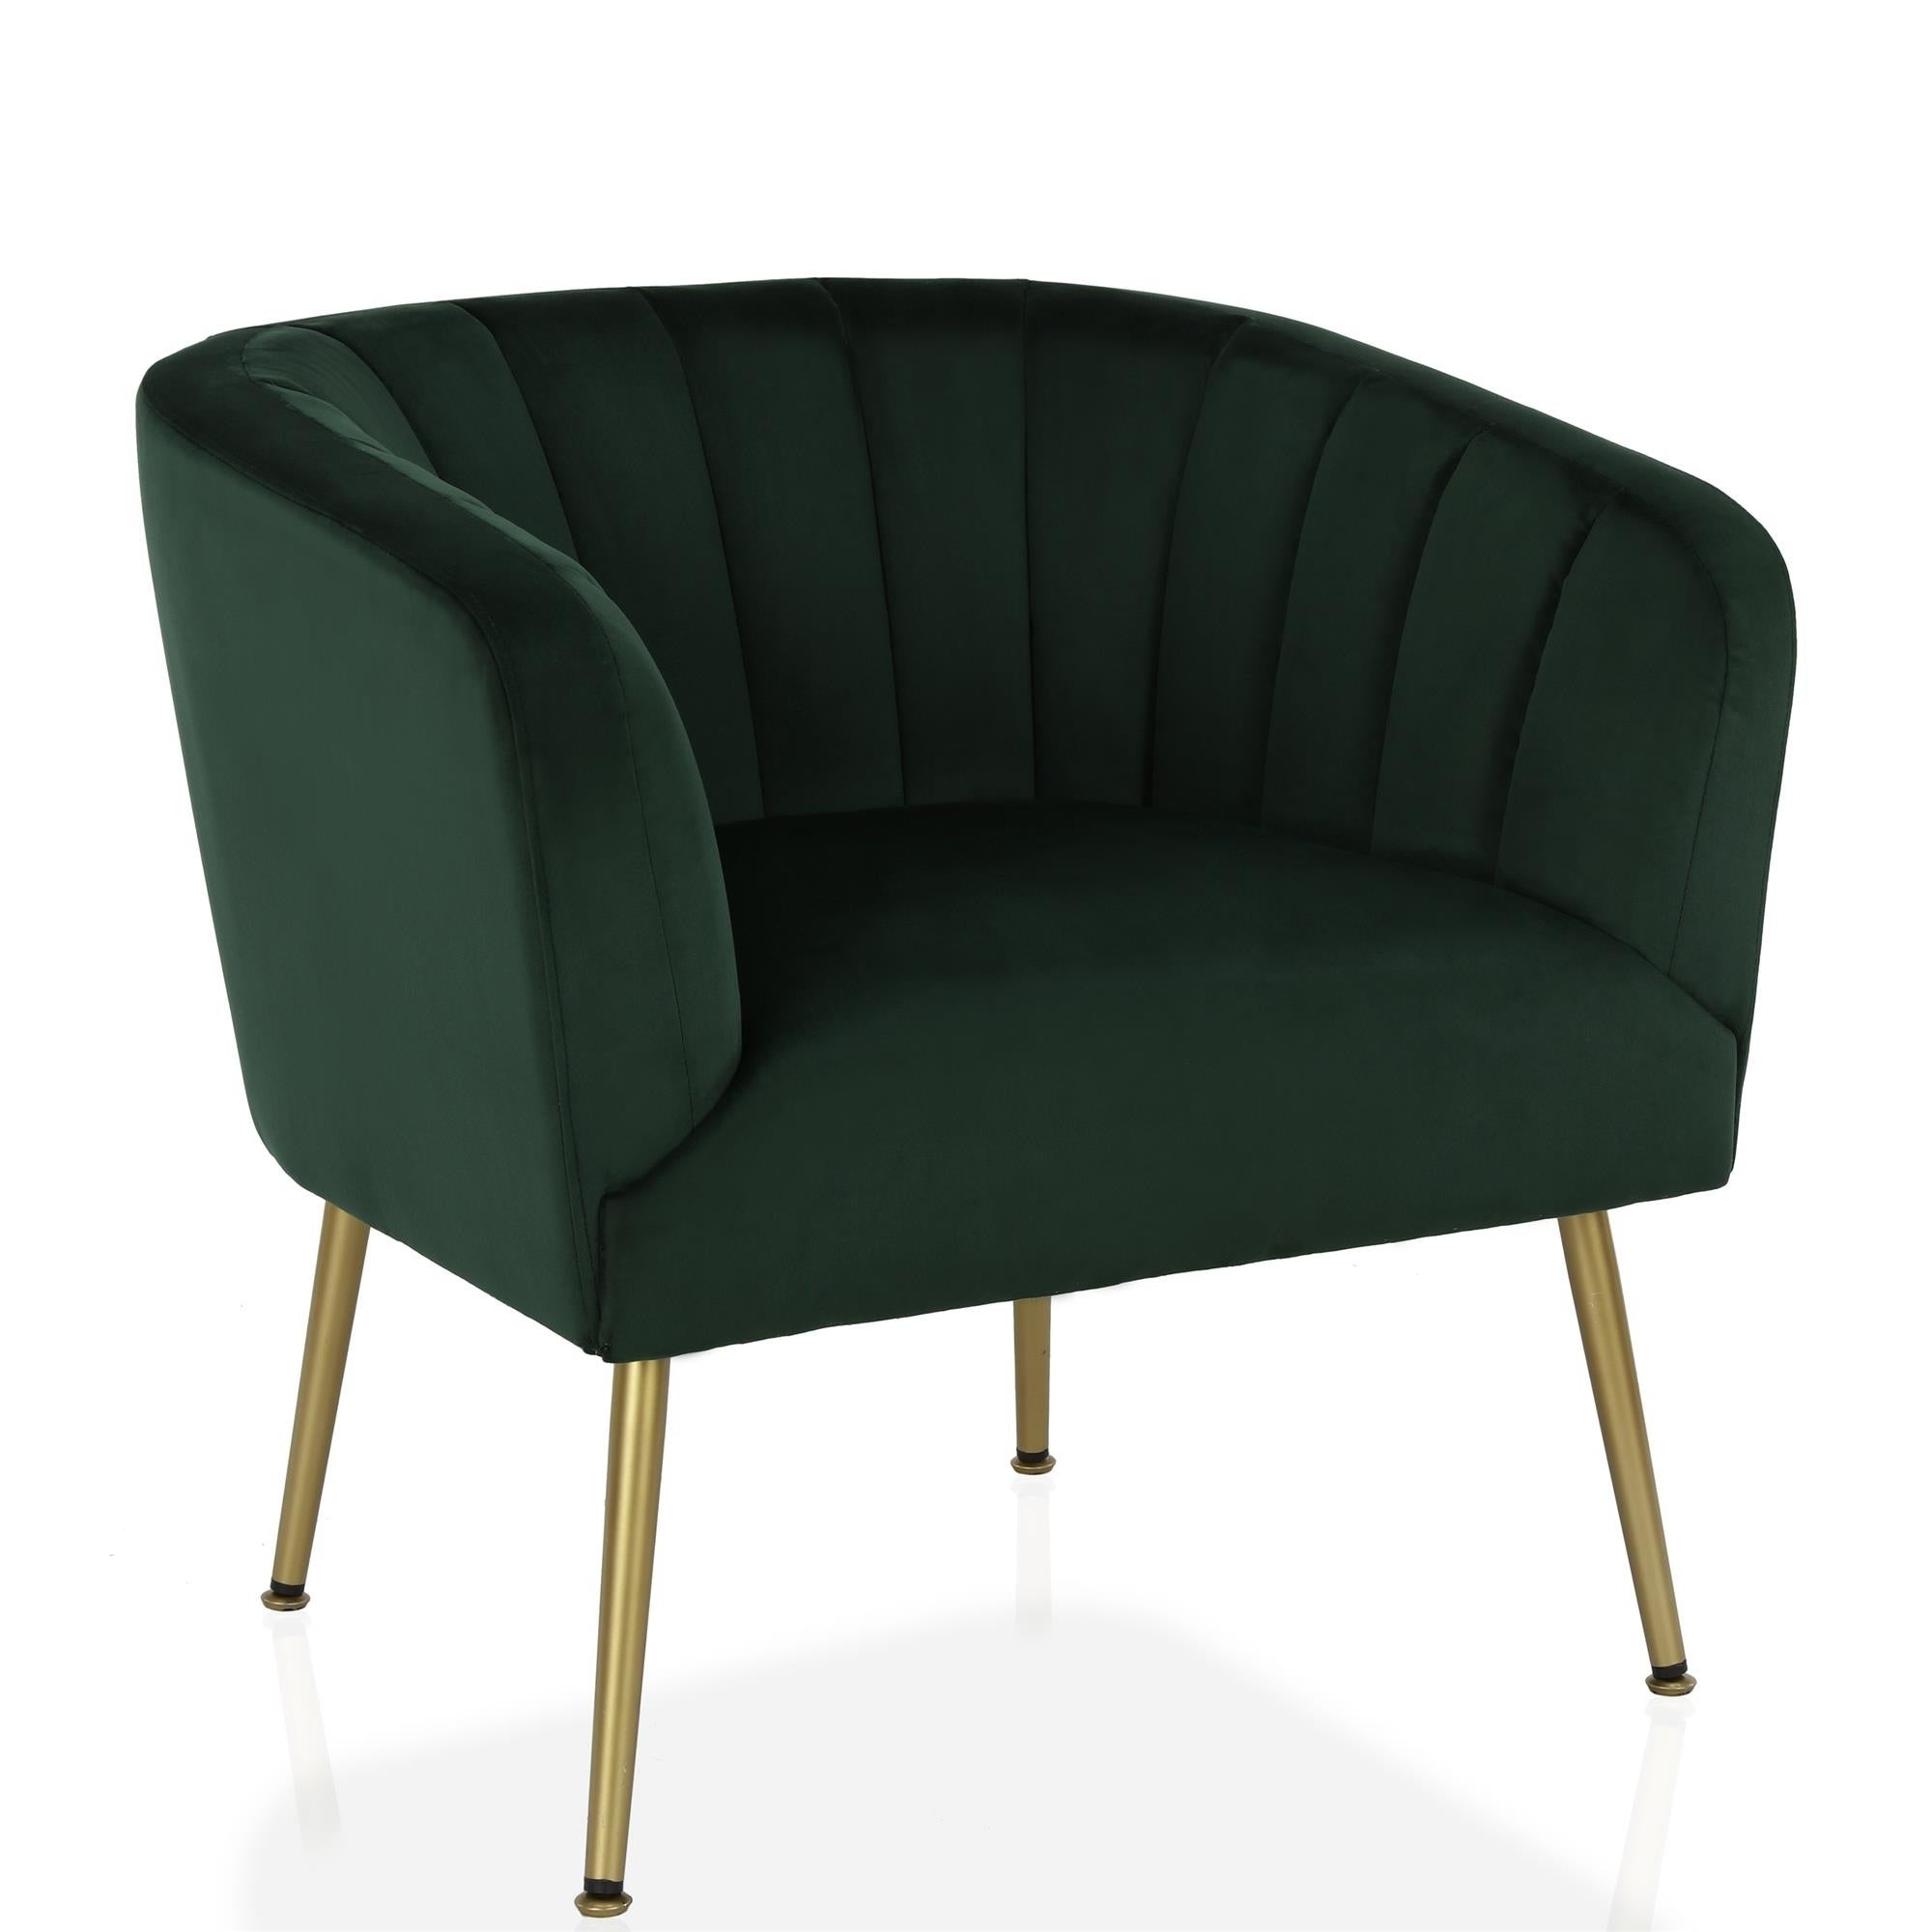 Shop CosmoLiving By Cosmopolitan Owsley Channel Back Green Accent Chair  With Gold Legs   Free Shipping Today   Overstock   26037080